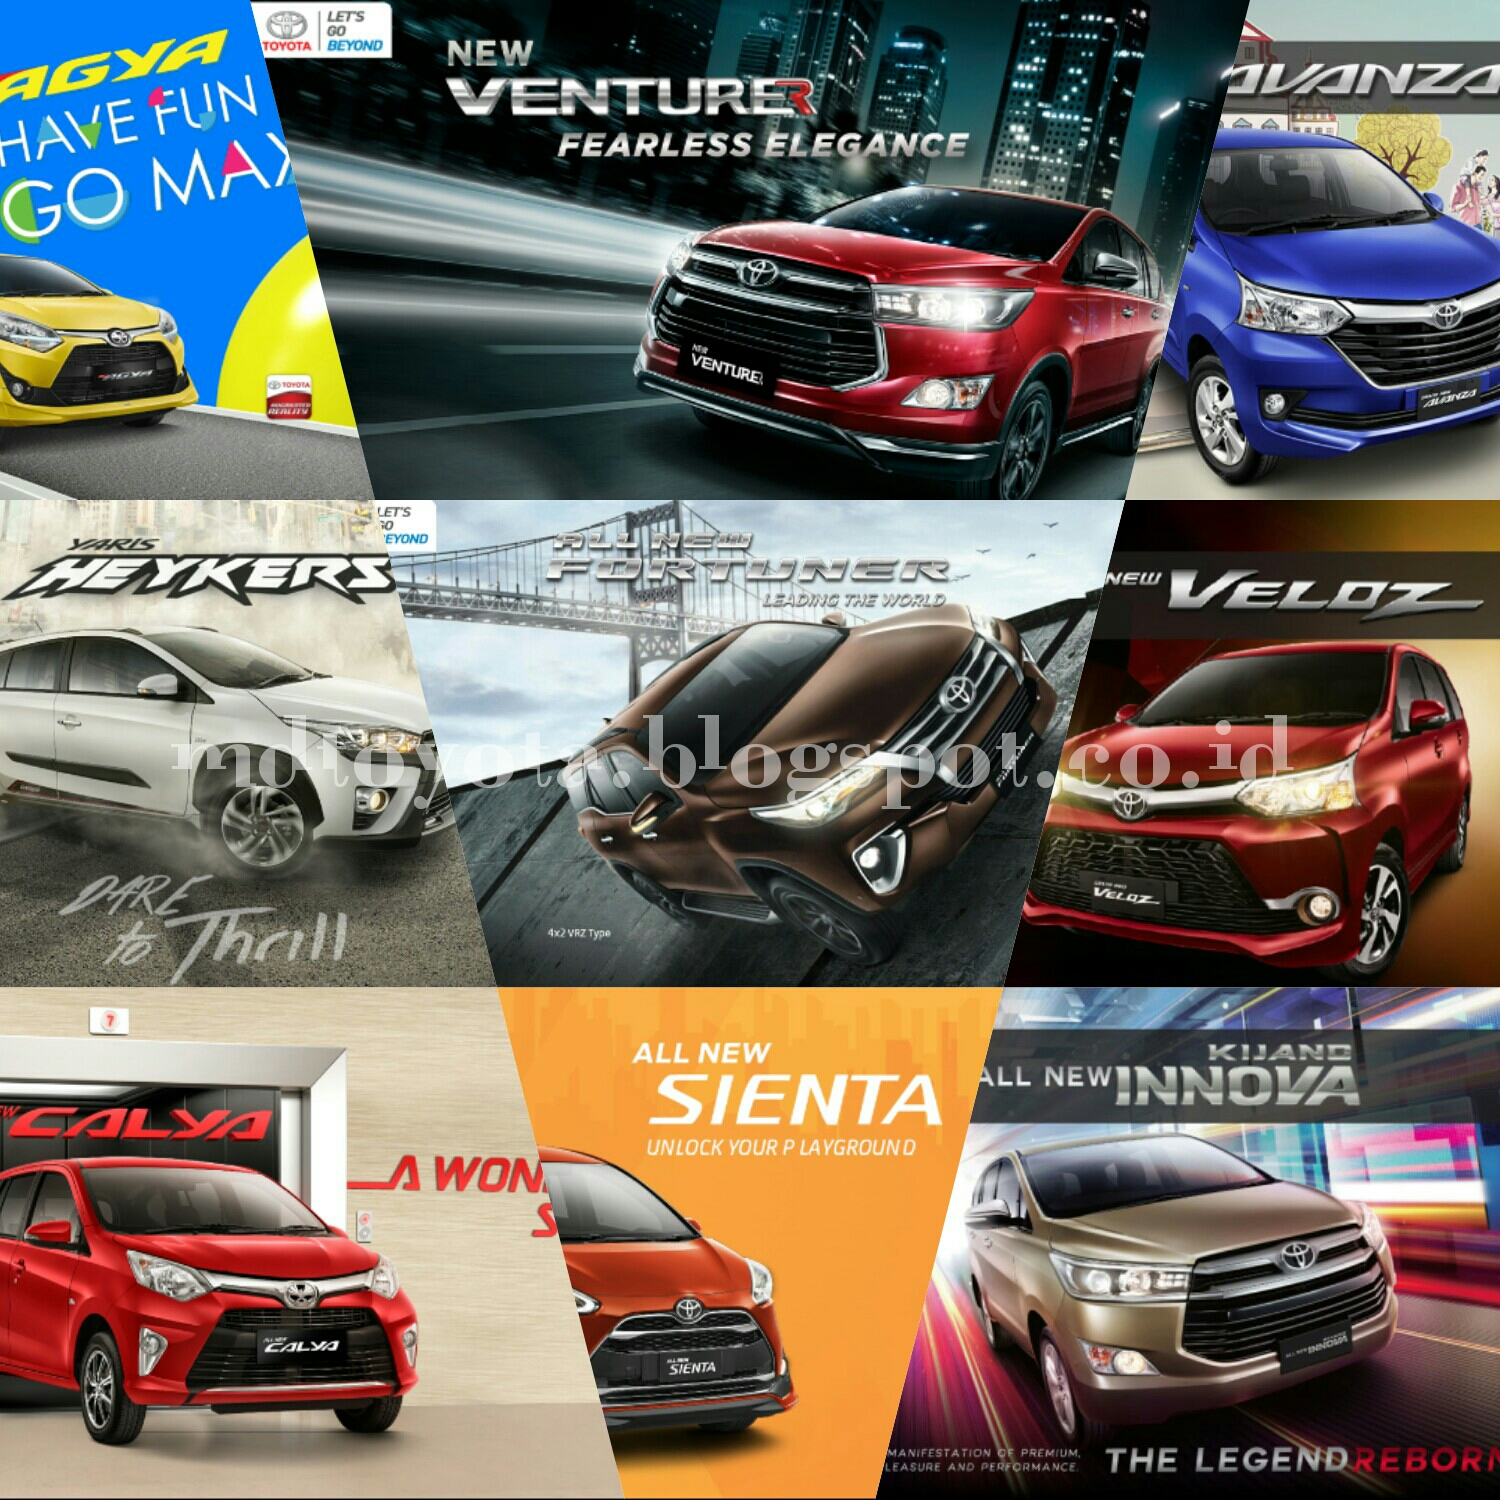 Kompresi Grand New Avanza 2016 Jual Velg Veloz Harga Toyota Jogja April 2018  0823 2323 1219